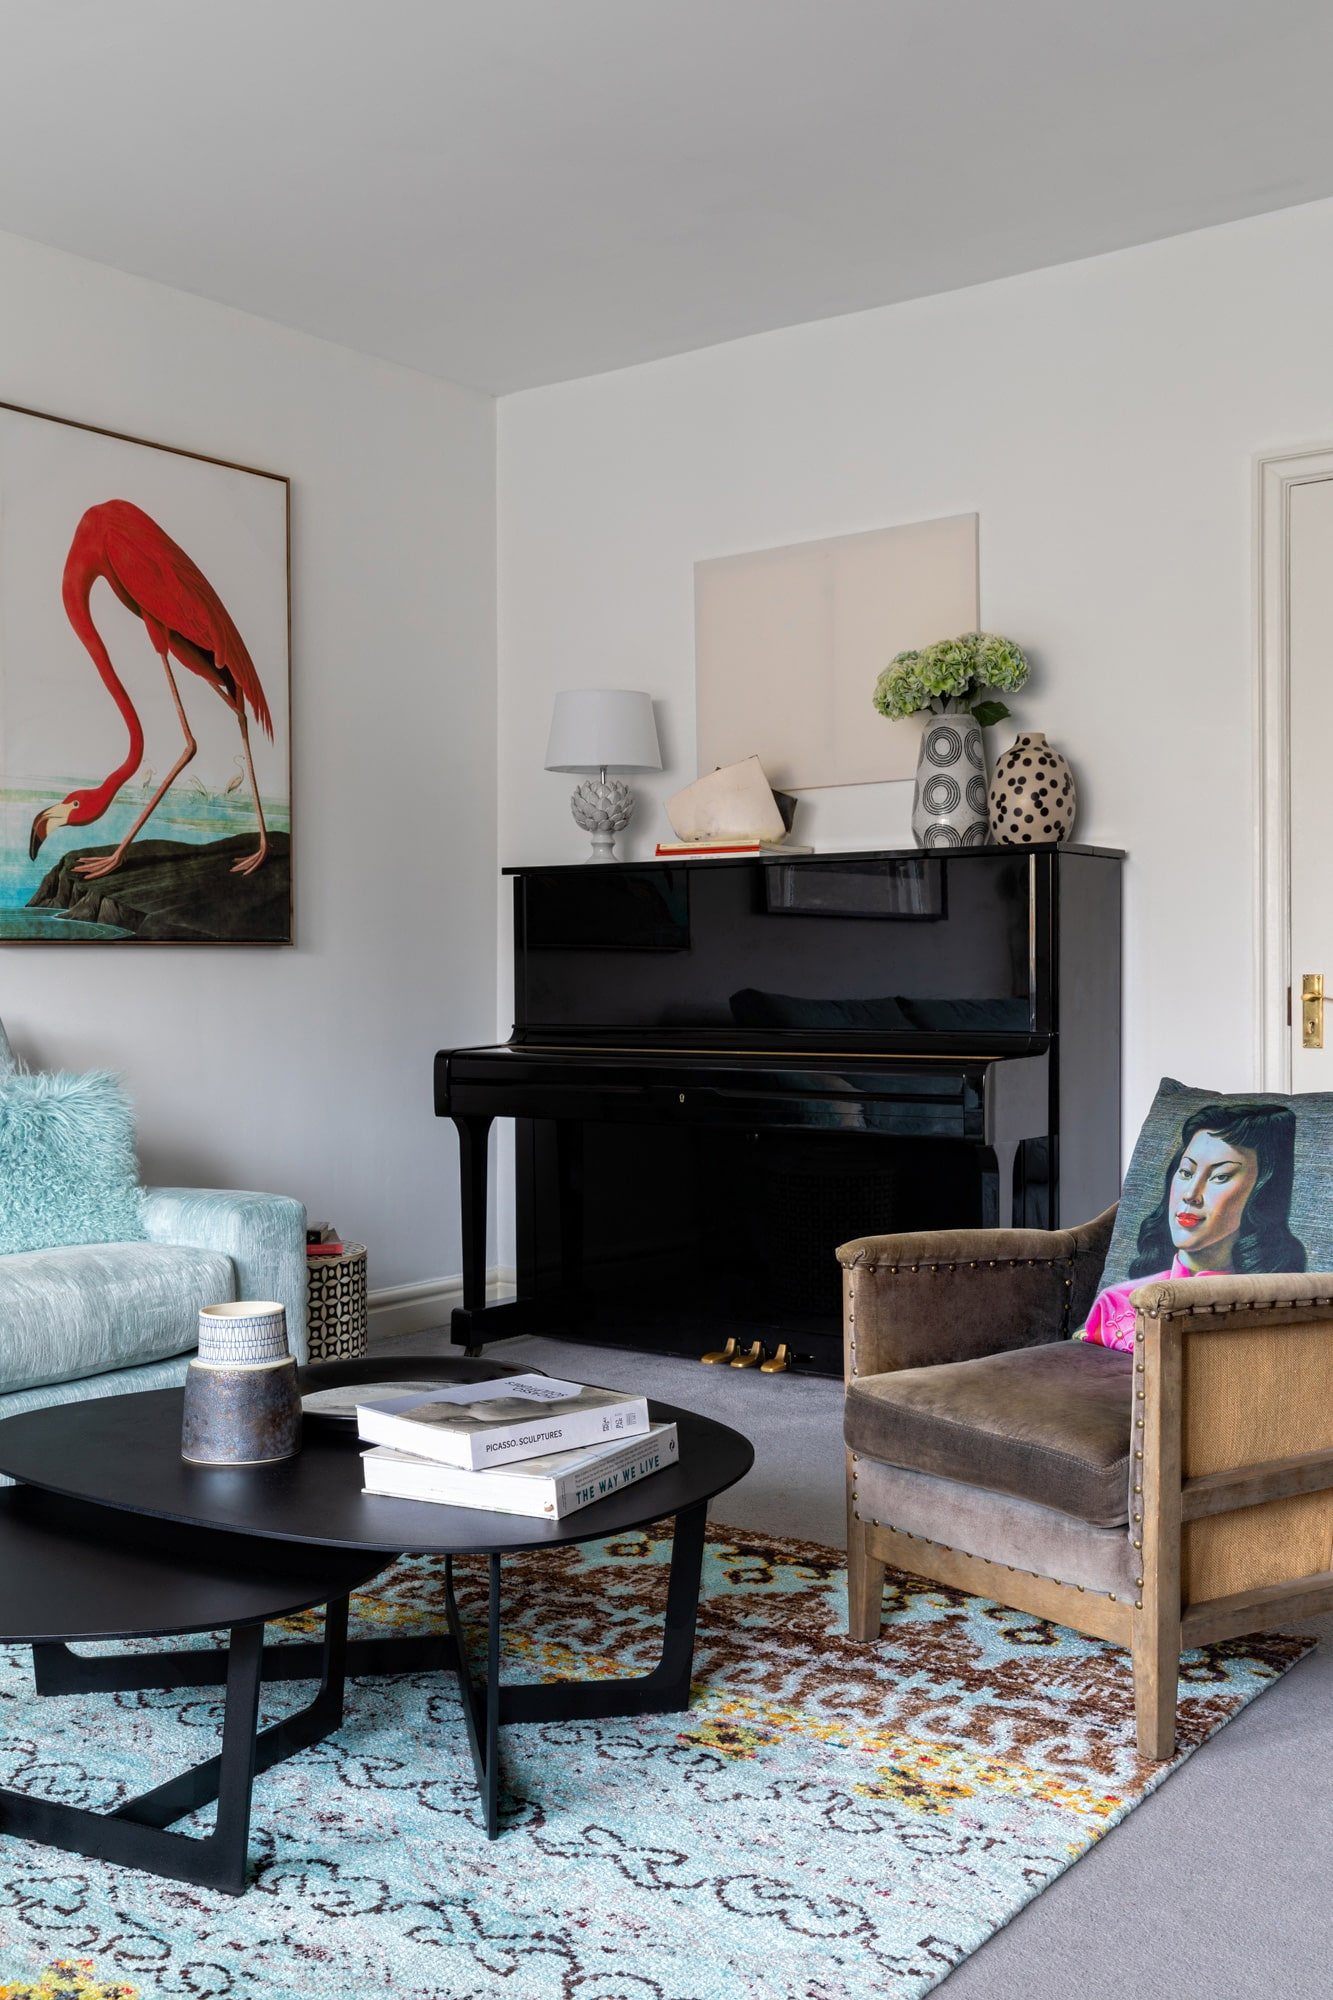 Interior photo: a living room design; a blue velvet sofa, coffee table, brown velvet armchair, black piano and a flamingo poster on the wall